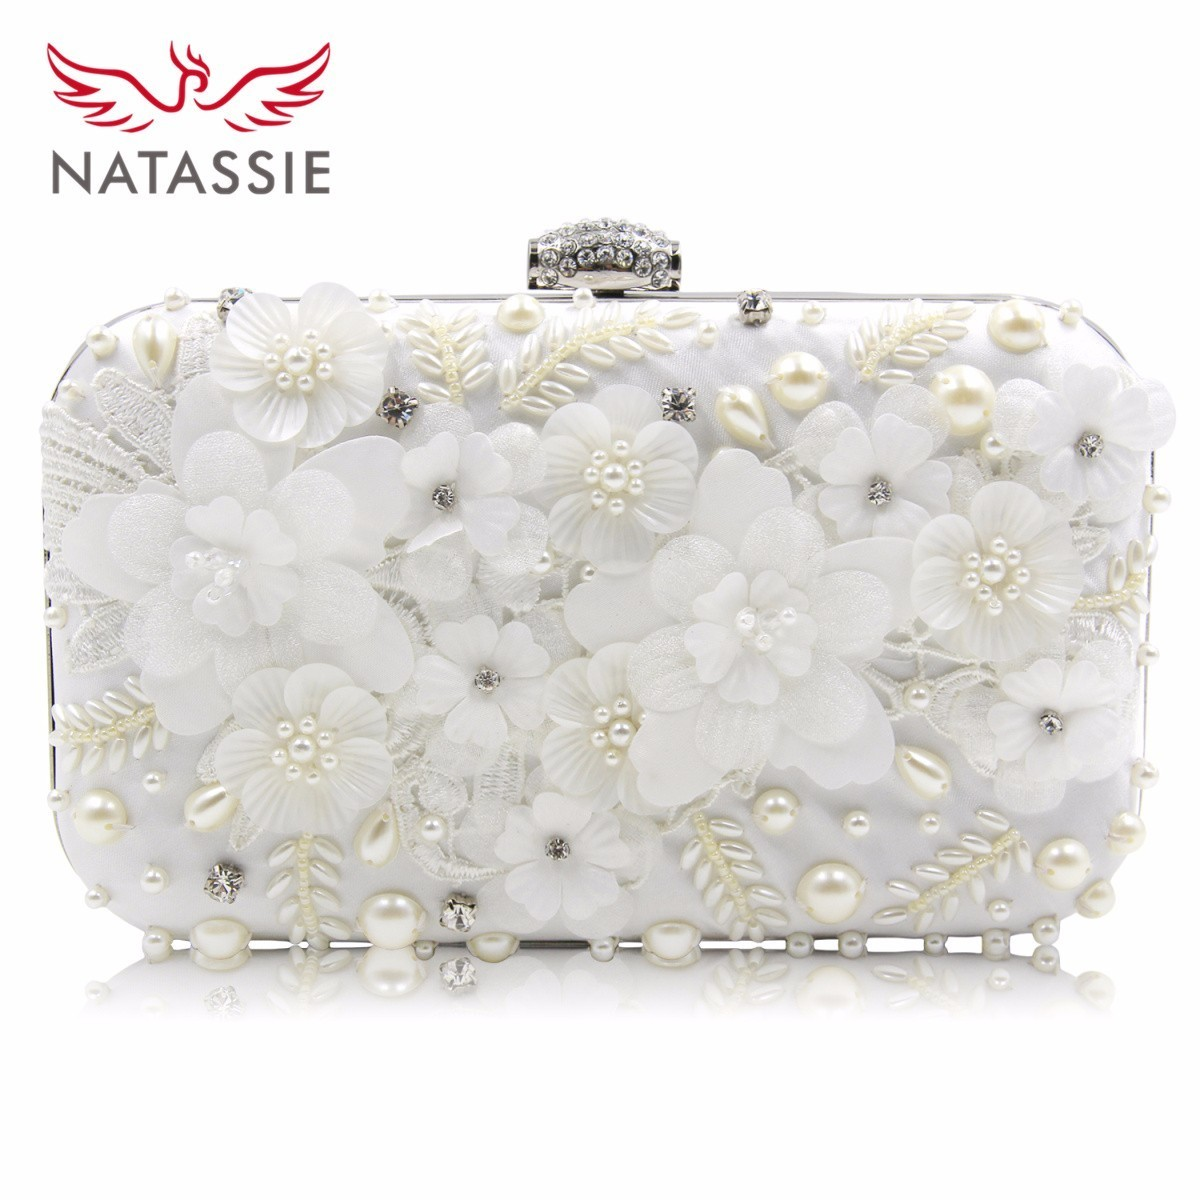 Natassie New Flower Clutch Women Evening Bag Ladies Diamond Alloy Beaded Clutches Female Party Bags Wedding Purse Good Quality natassie 2017 new women clutch bag evening bags hollow out crystal wedding clutches with chain ladies party purse